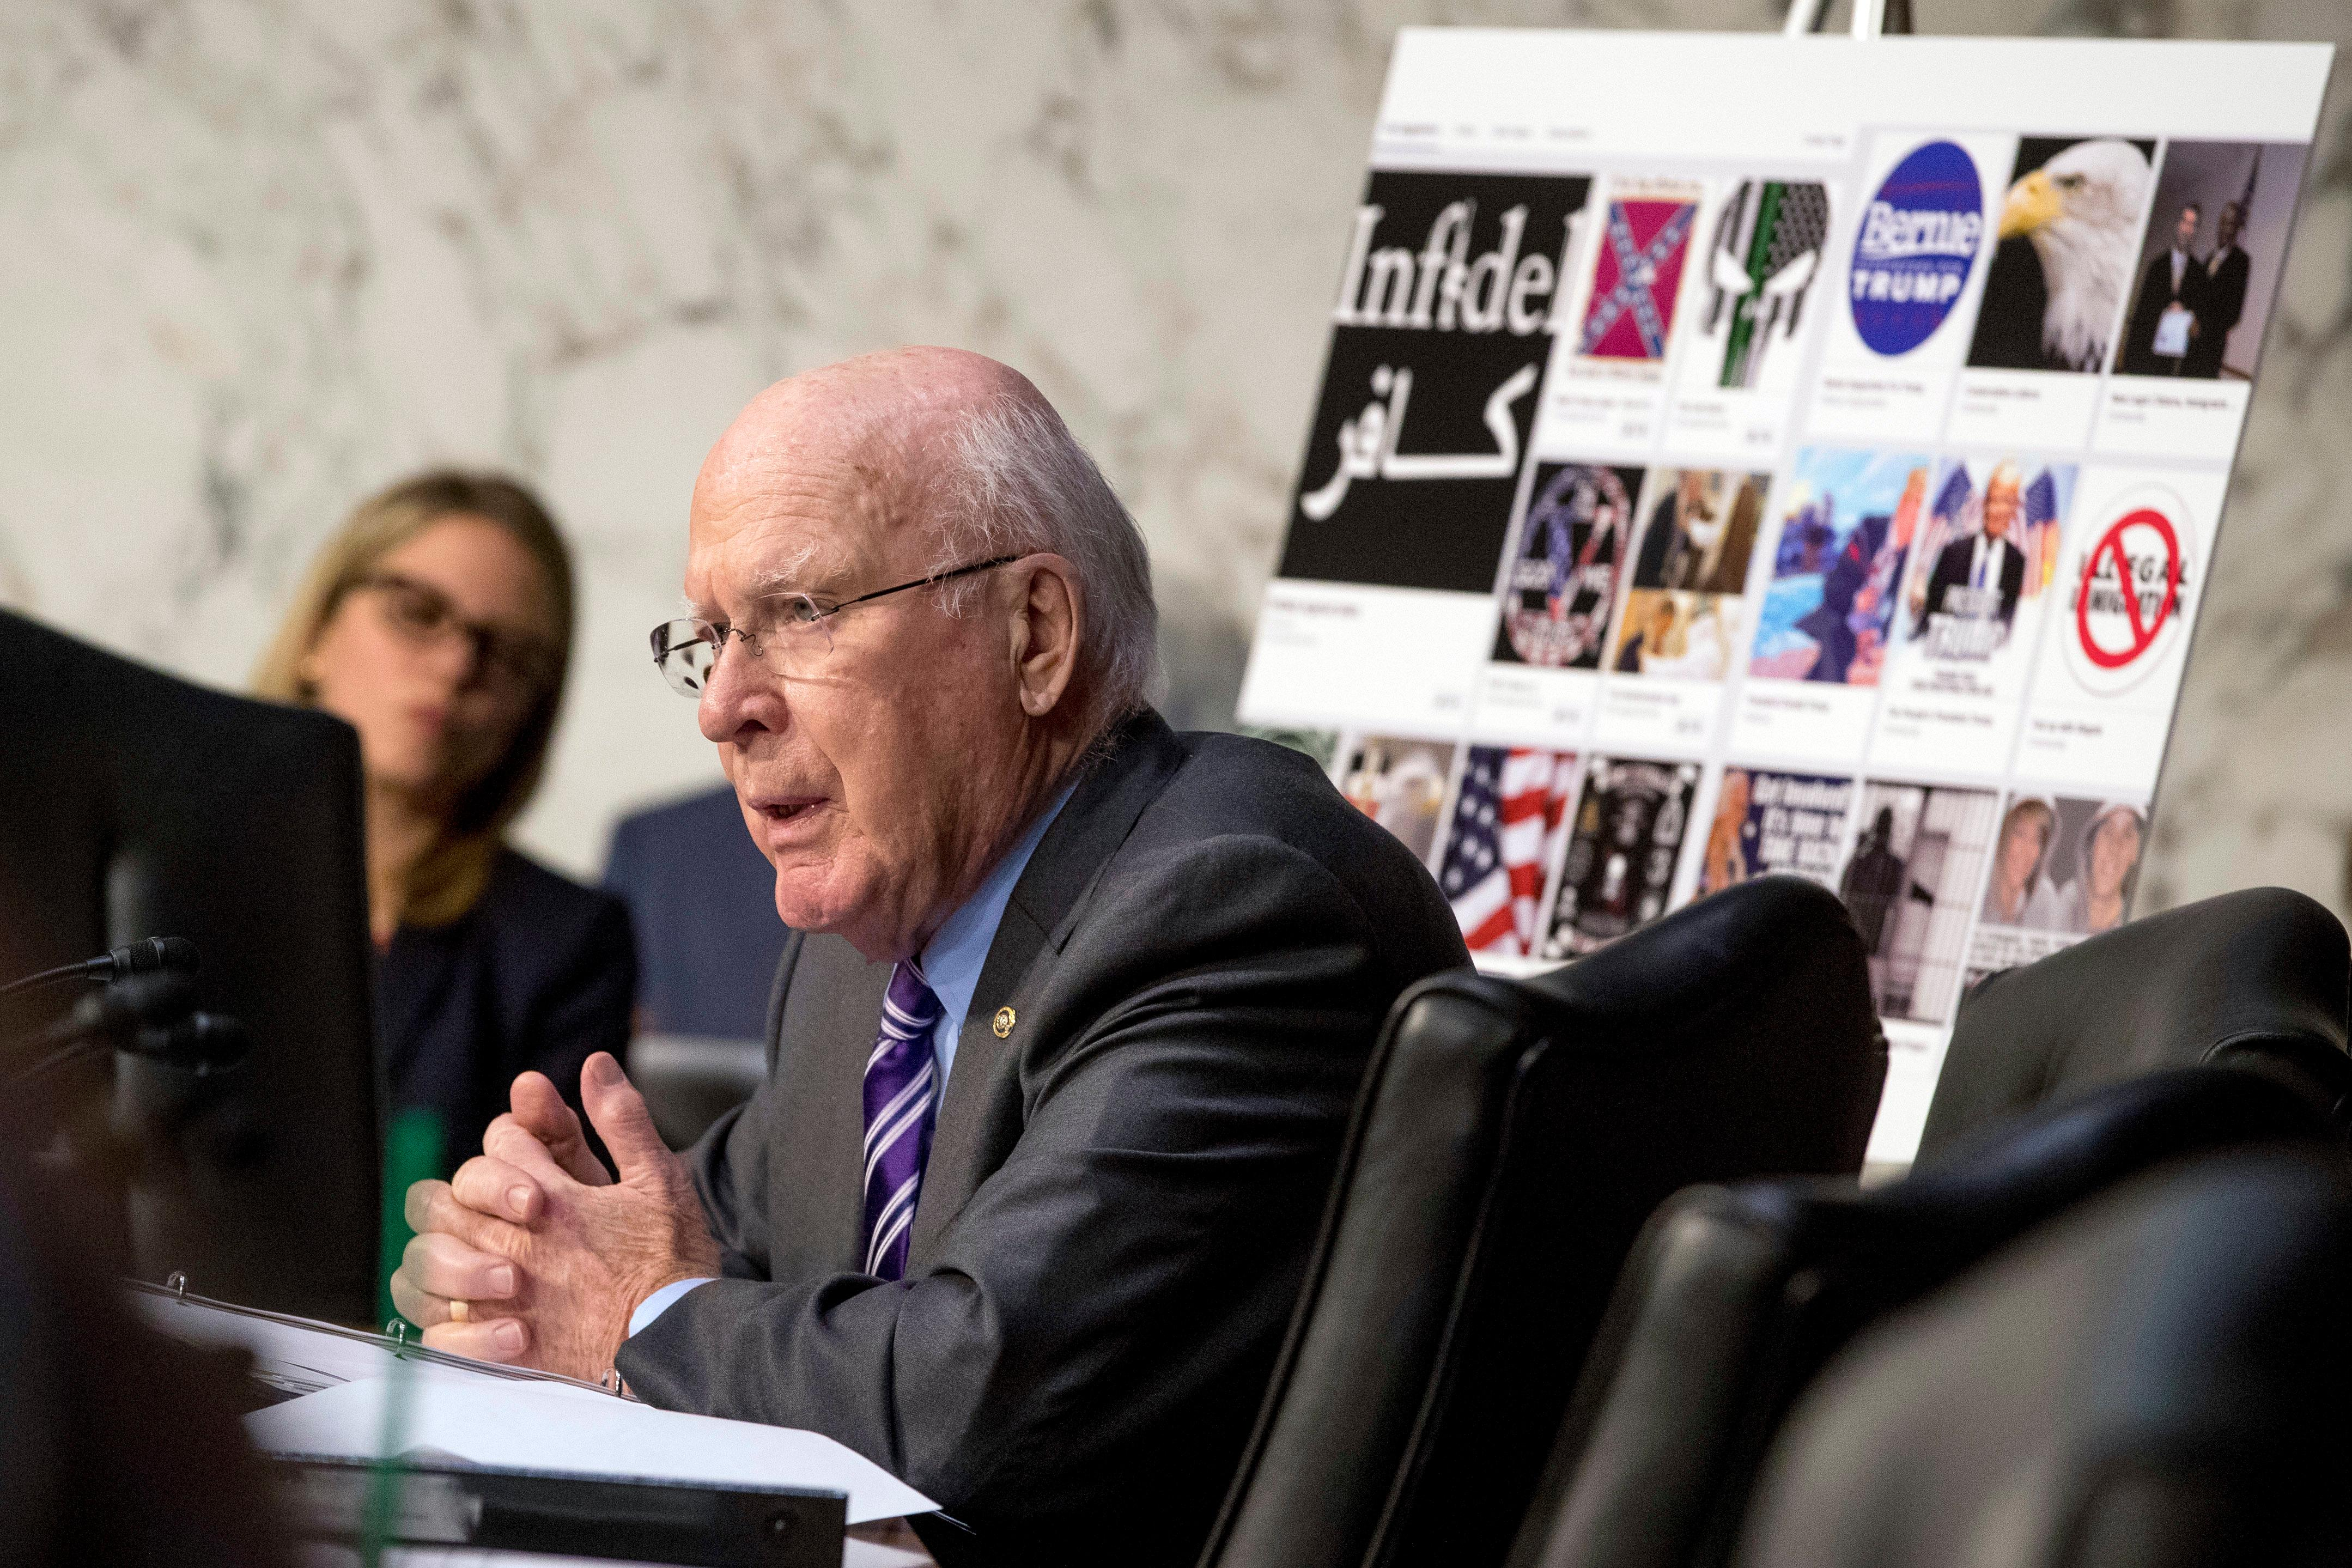 Sen. Patrick Leahy, D-Vt., speaks next to a poster depicting examples of questionable internet ads that he says were found online today as Facebook's General Counsel Colin Stretch, Twitter's Acting General Counsel Sean Edgett, and Google's Law Enforcement and Information Security Director Richard Salgado, testify during a Senate Committee on the Judiciary, Subcommittee on Crime and Terrorism hearing on Capitol Hill in Washington, Tuesday, Oct. 31, 2017. (AP Photo/Andrew Harnik)<p></p>